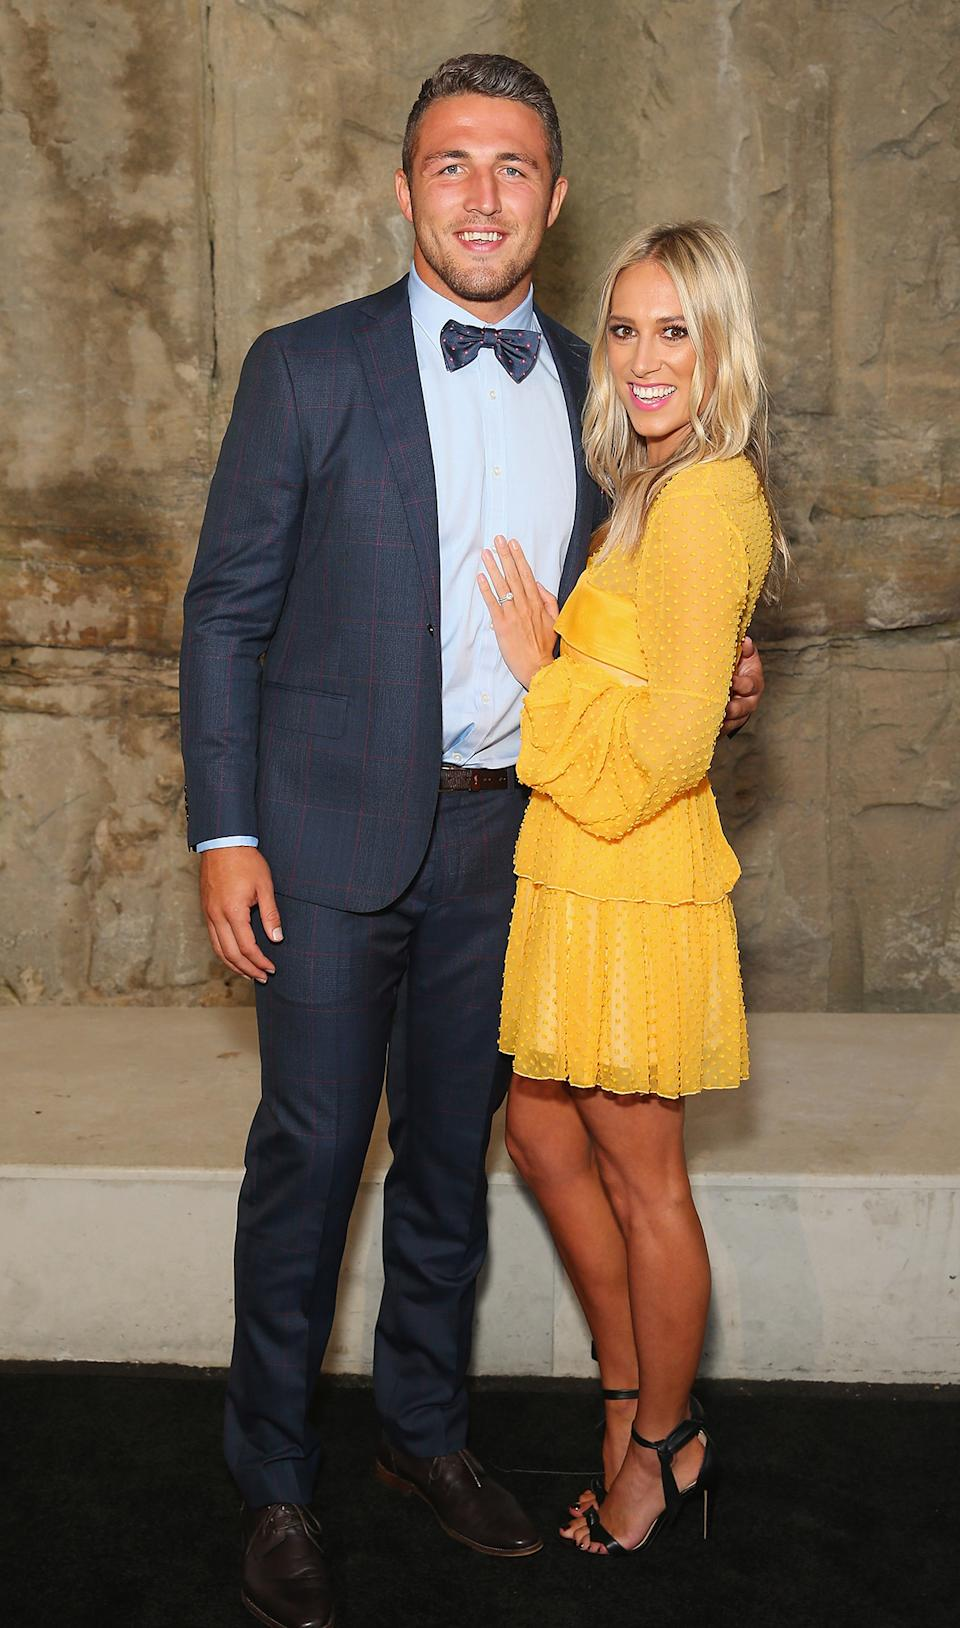 Sam Burgess and Phoebe Burgess at an event